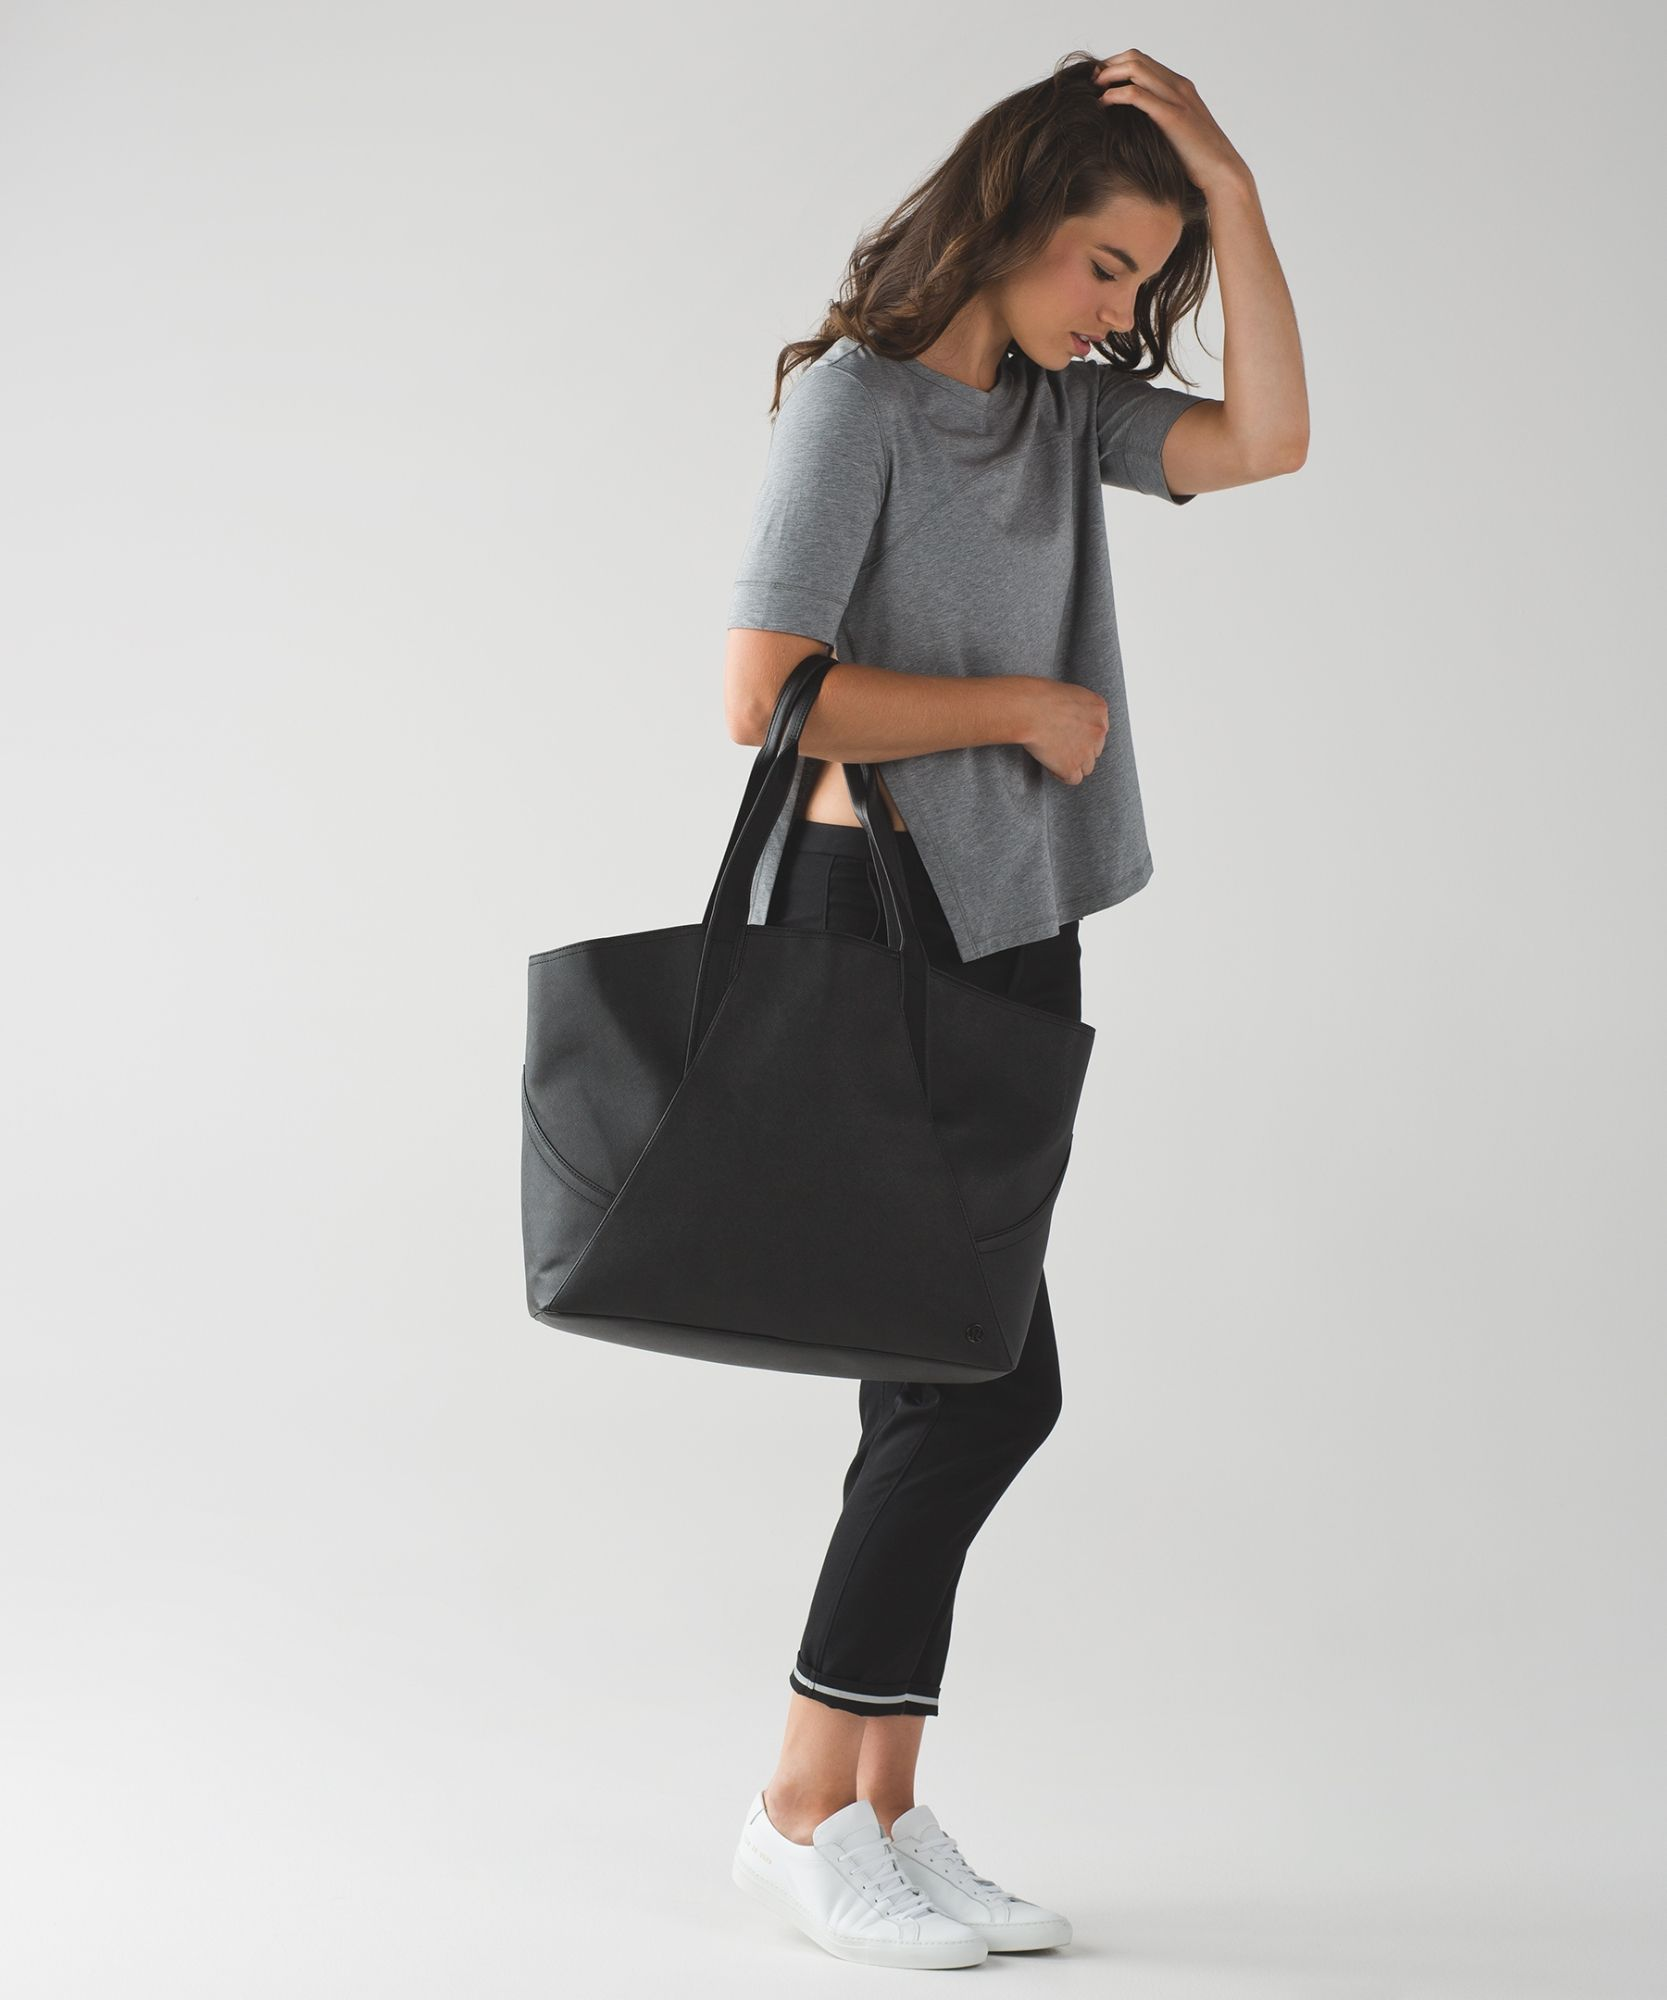 c7b09e7fe0 all day tote | women's yoga and running bags | lululemon athletica ...